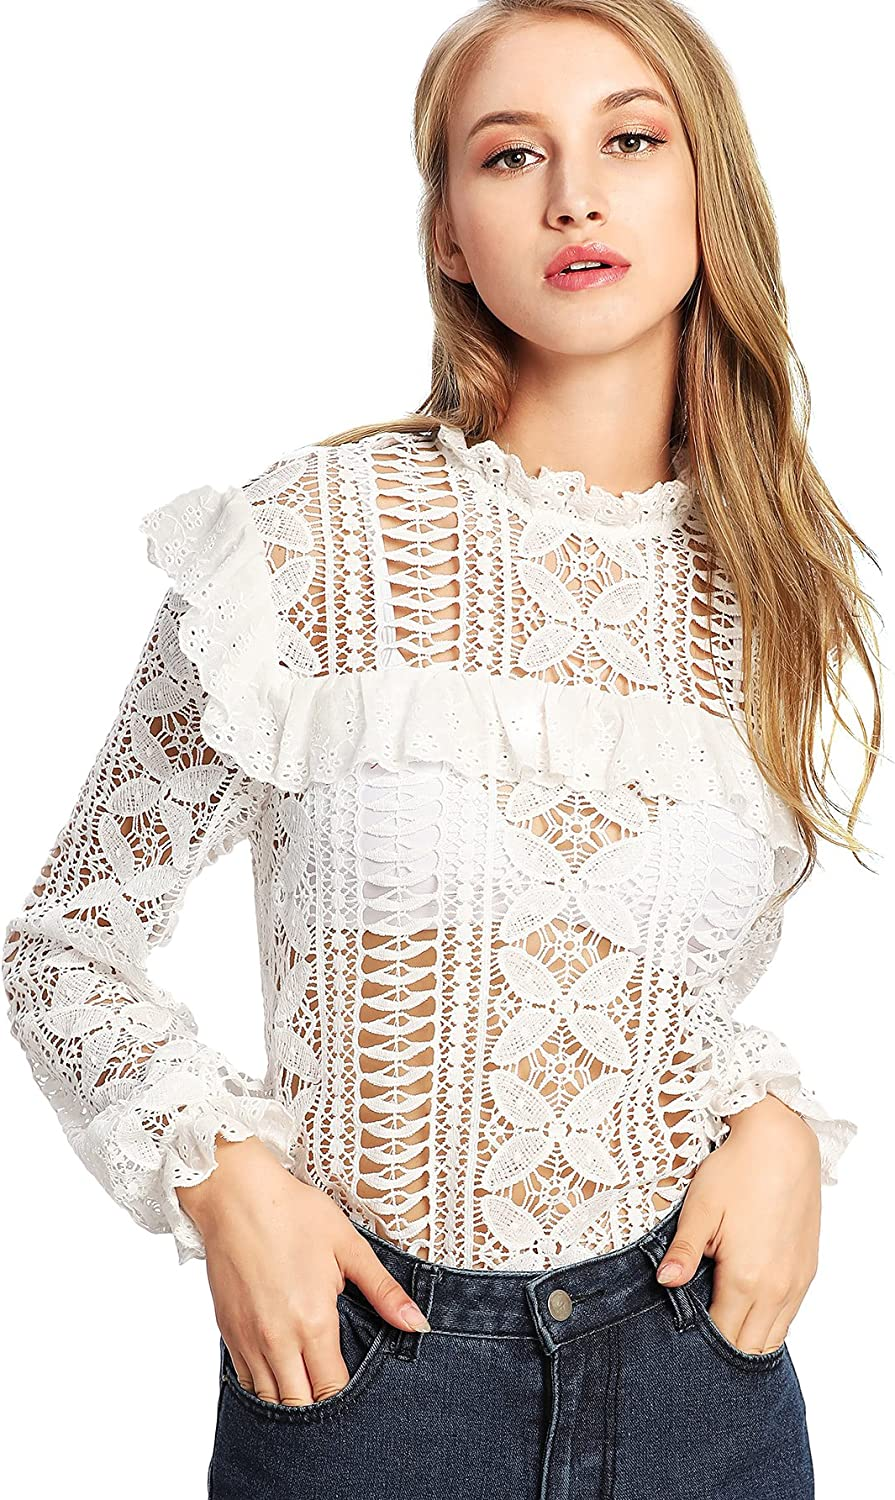 DIDK Women's Floral Lace Cut Out Frilled Detail Sheer Blouse